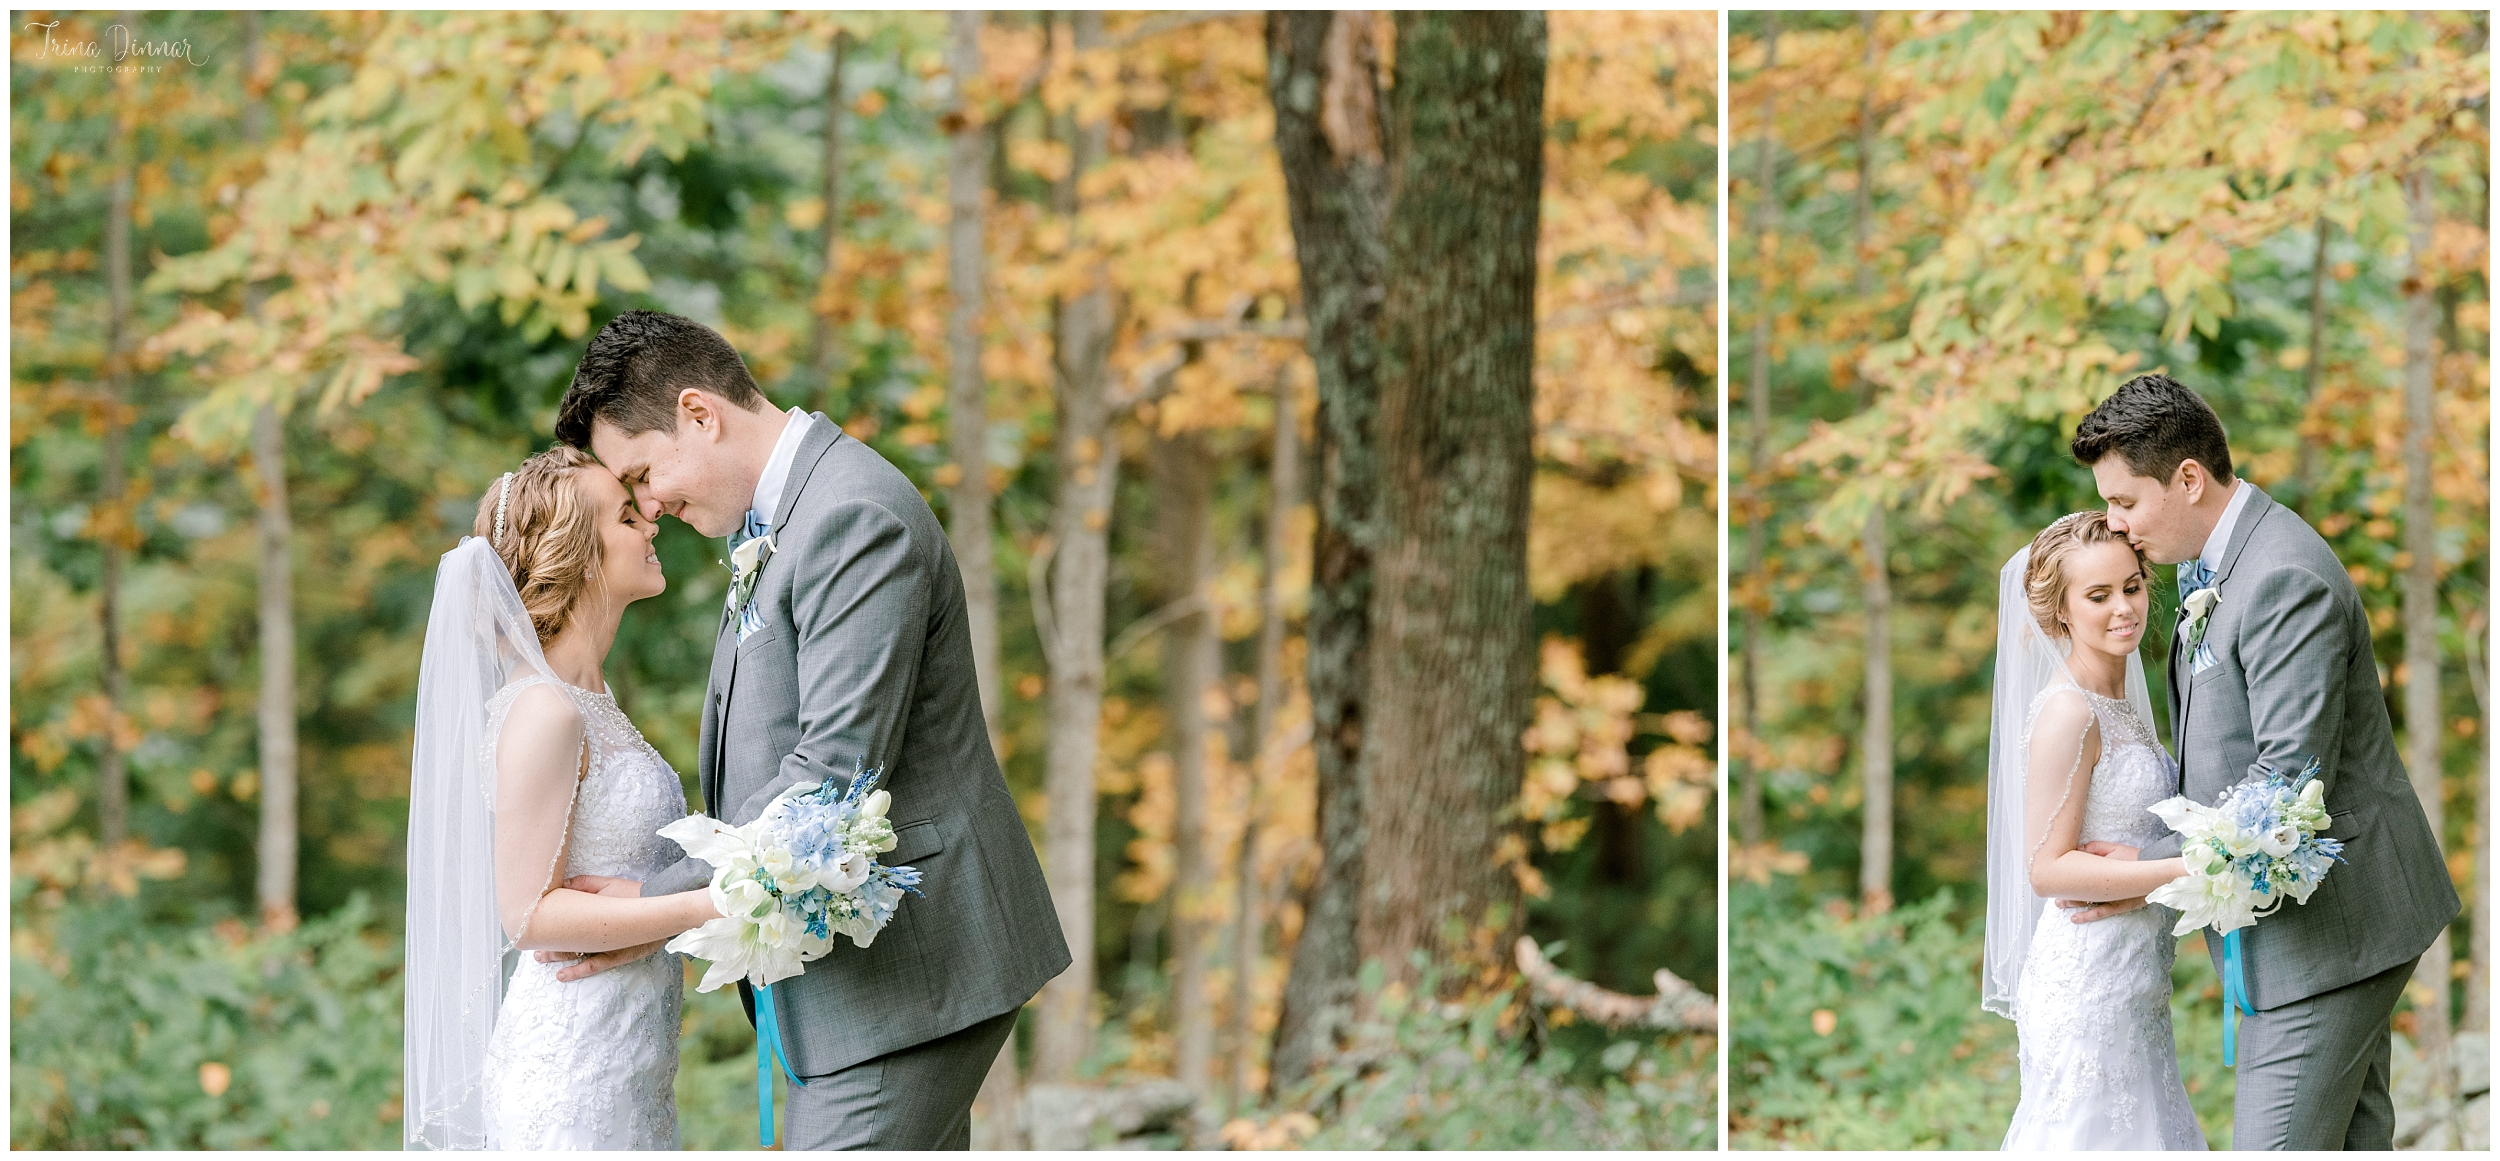 Mallori and James Clay Hill Farm wedding photography